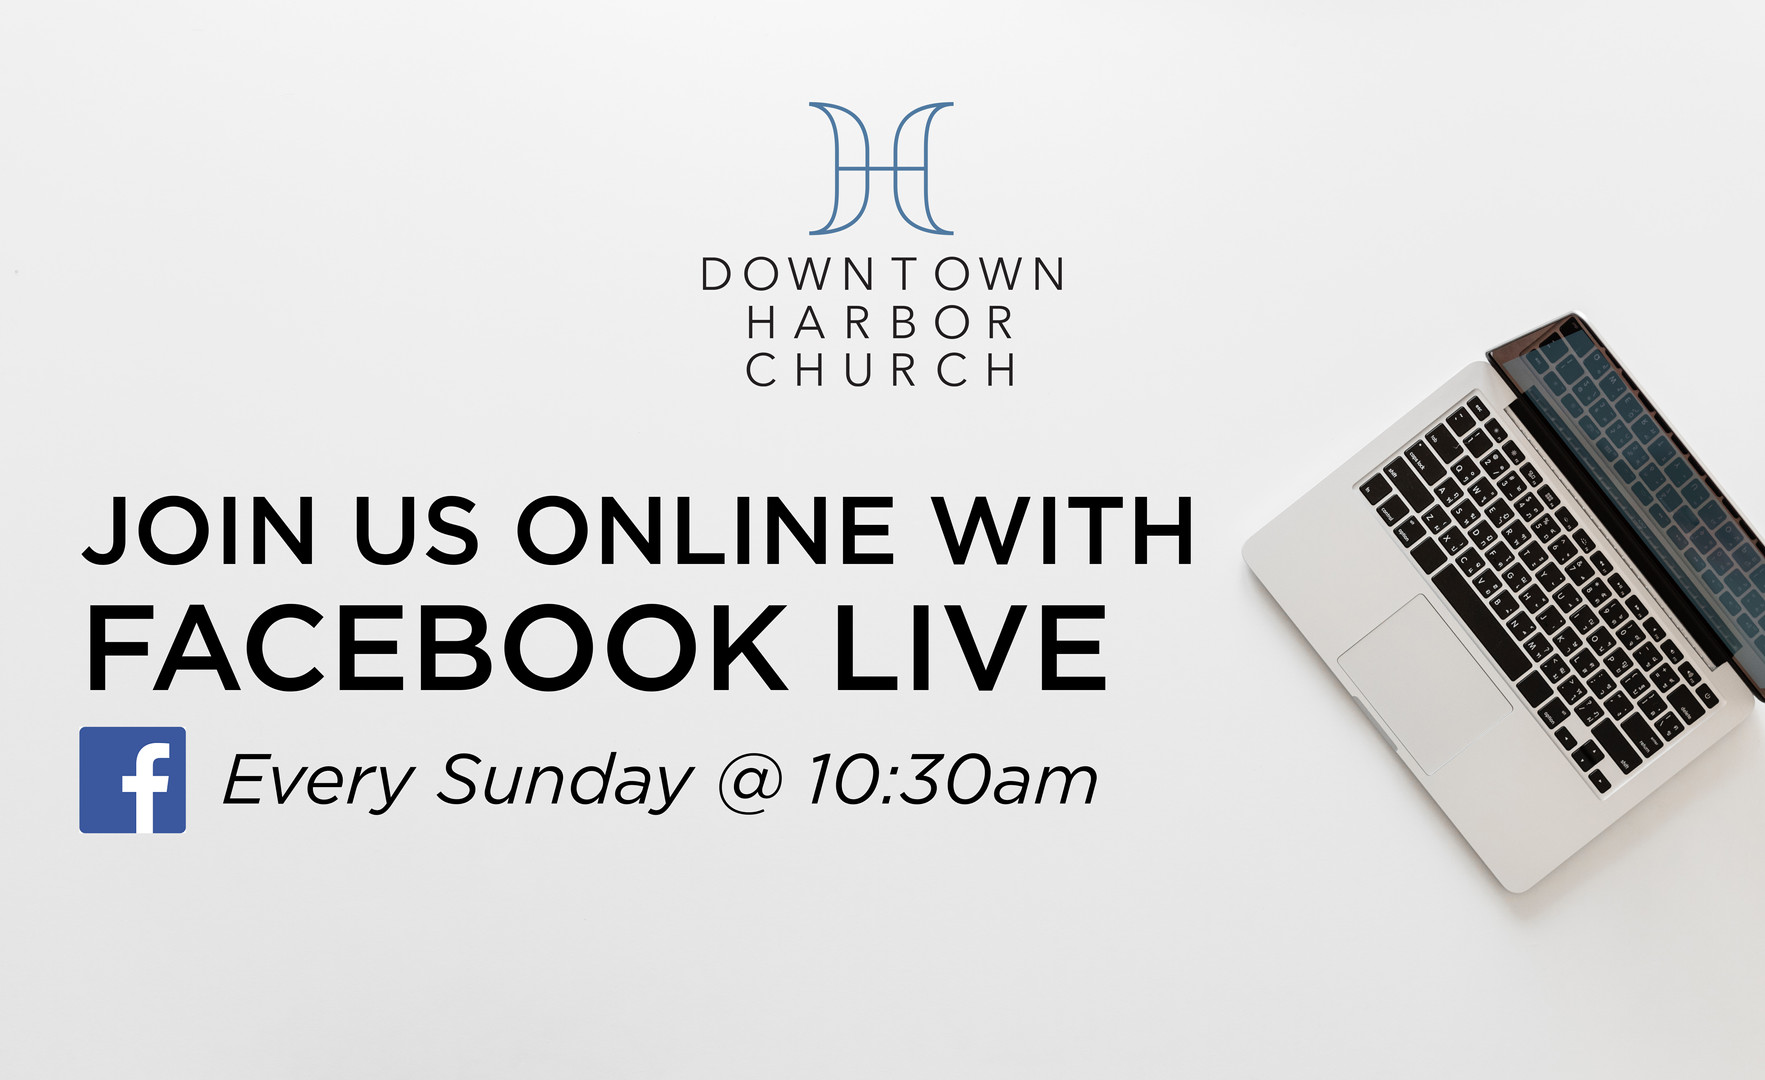 Facebook Live Every Sunday at 10:30am